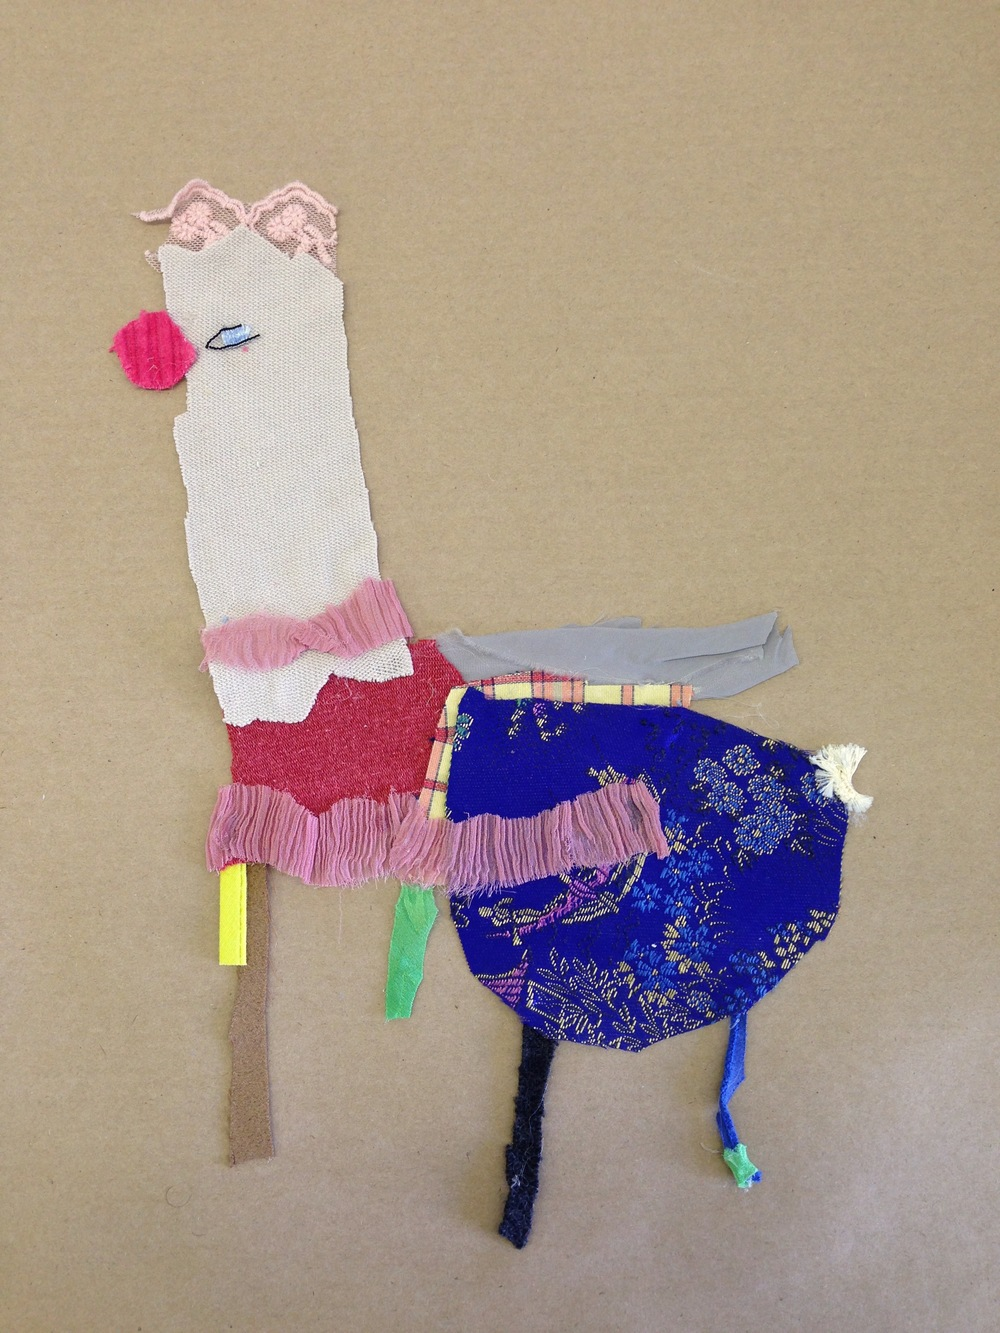 Ostrich  20.5 x 20.5 inches  Recycled fabric:  2015